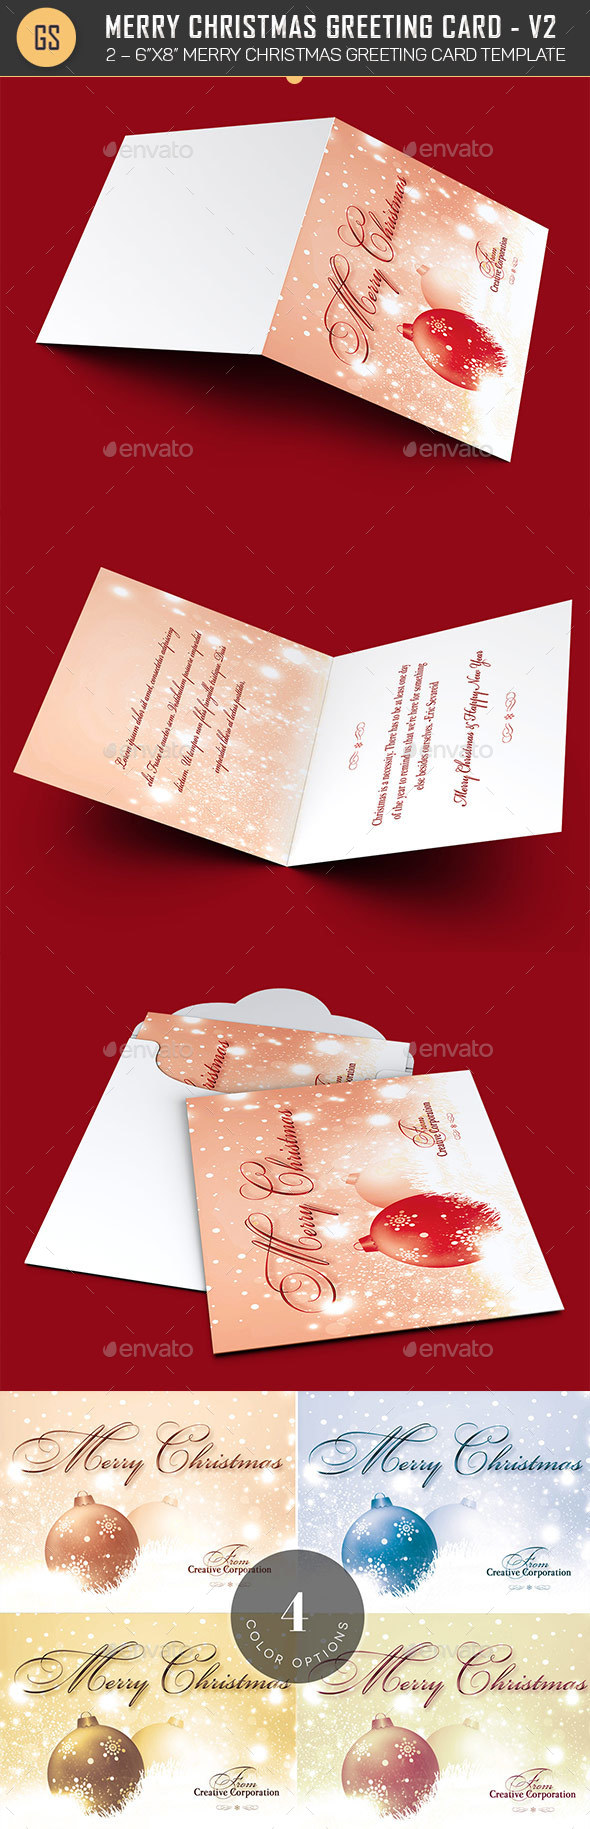 Merry Christmas Greeting Card Template V2 - Holiday Greeting Cards